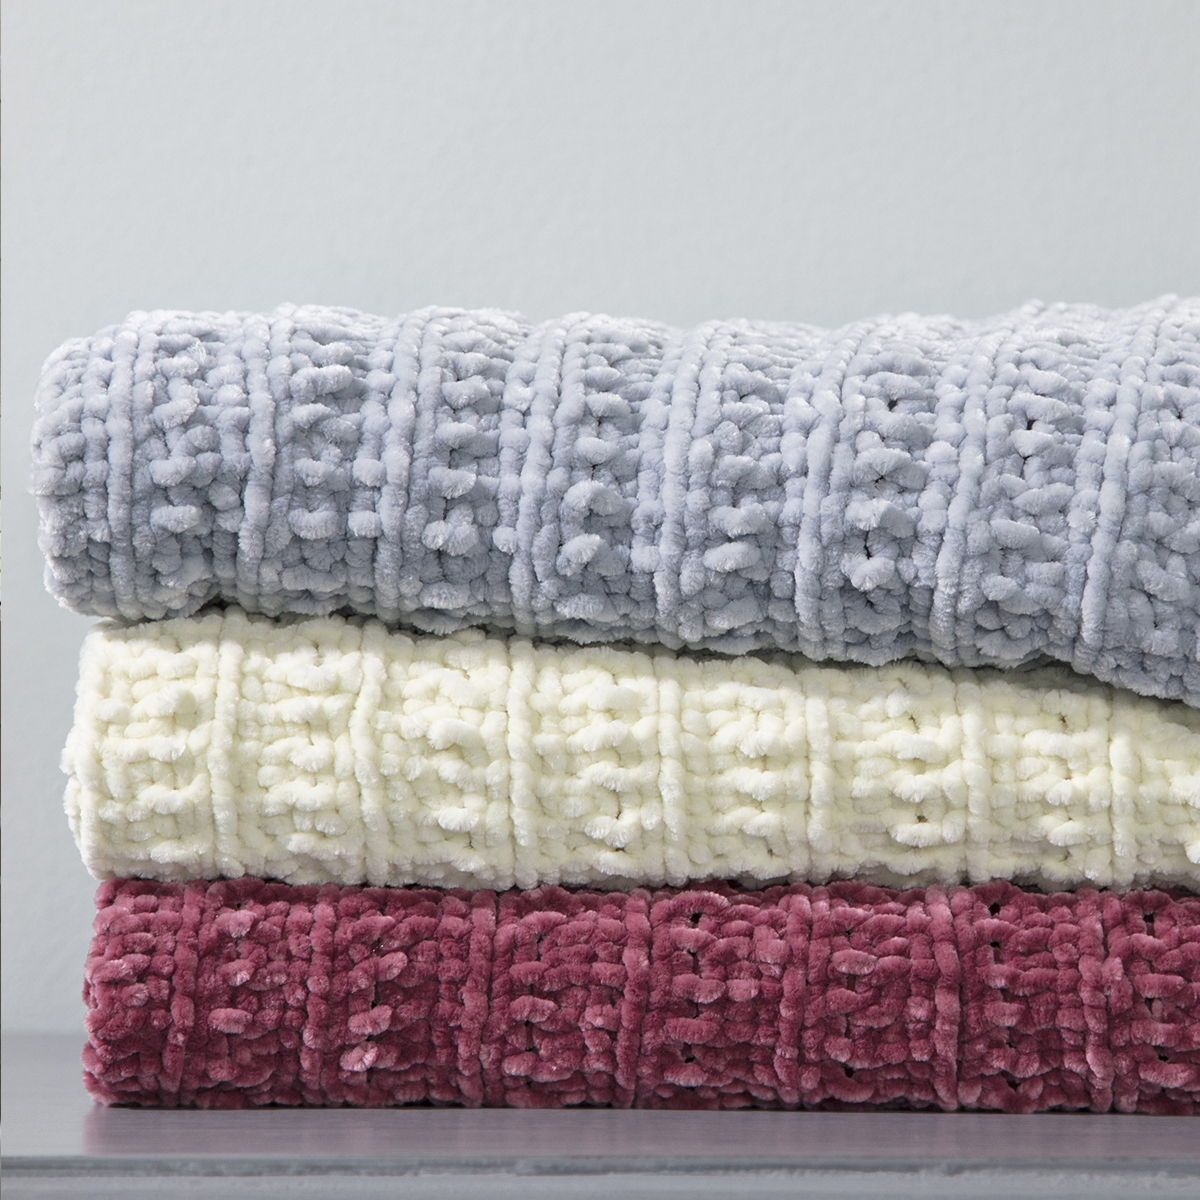 Chilly Mornings Call For A Plush Blanket That You Can Boast About Being Handmade Premier Yarn S Ret Circular Knitting Circular Knitting Needles Knitted Throws